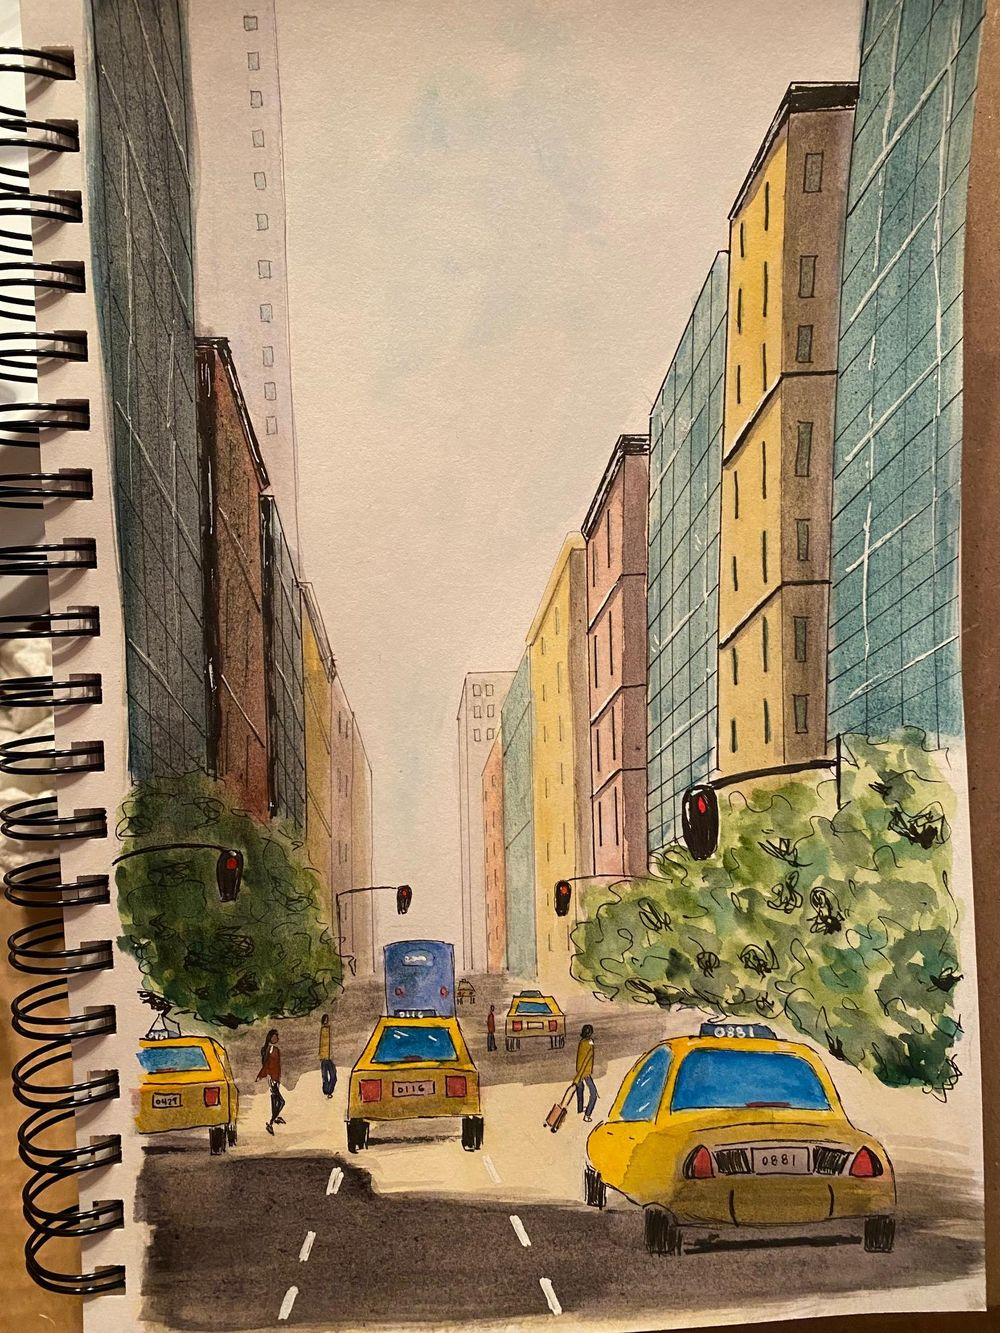 NY One point perspective - image 1 - student project